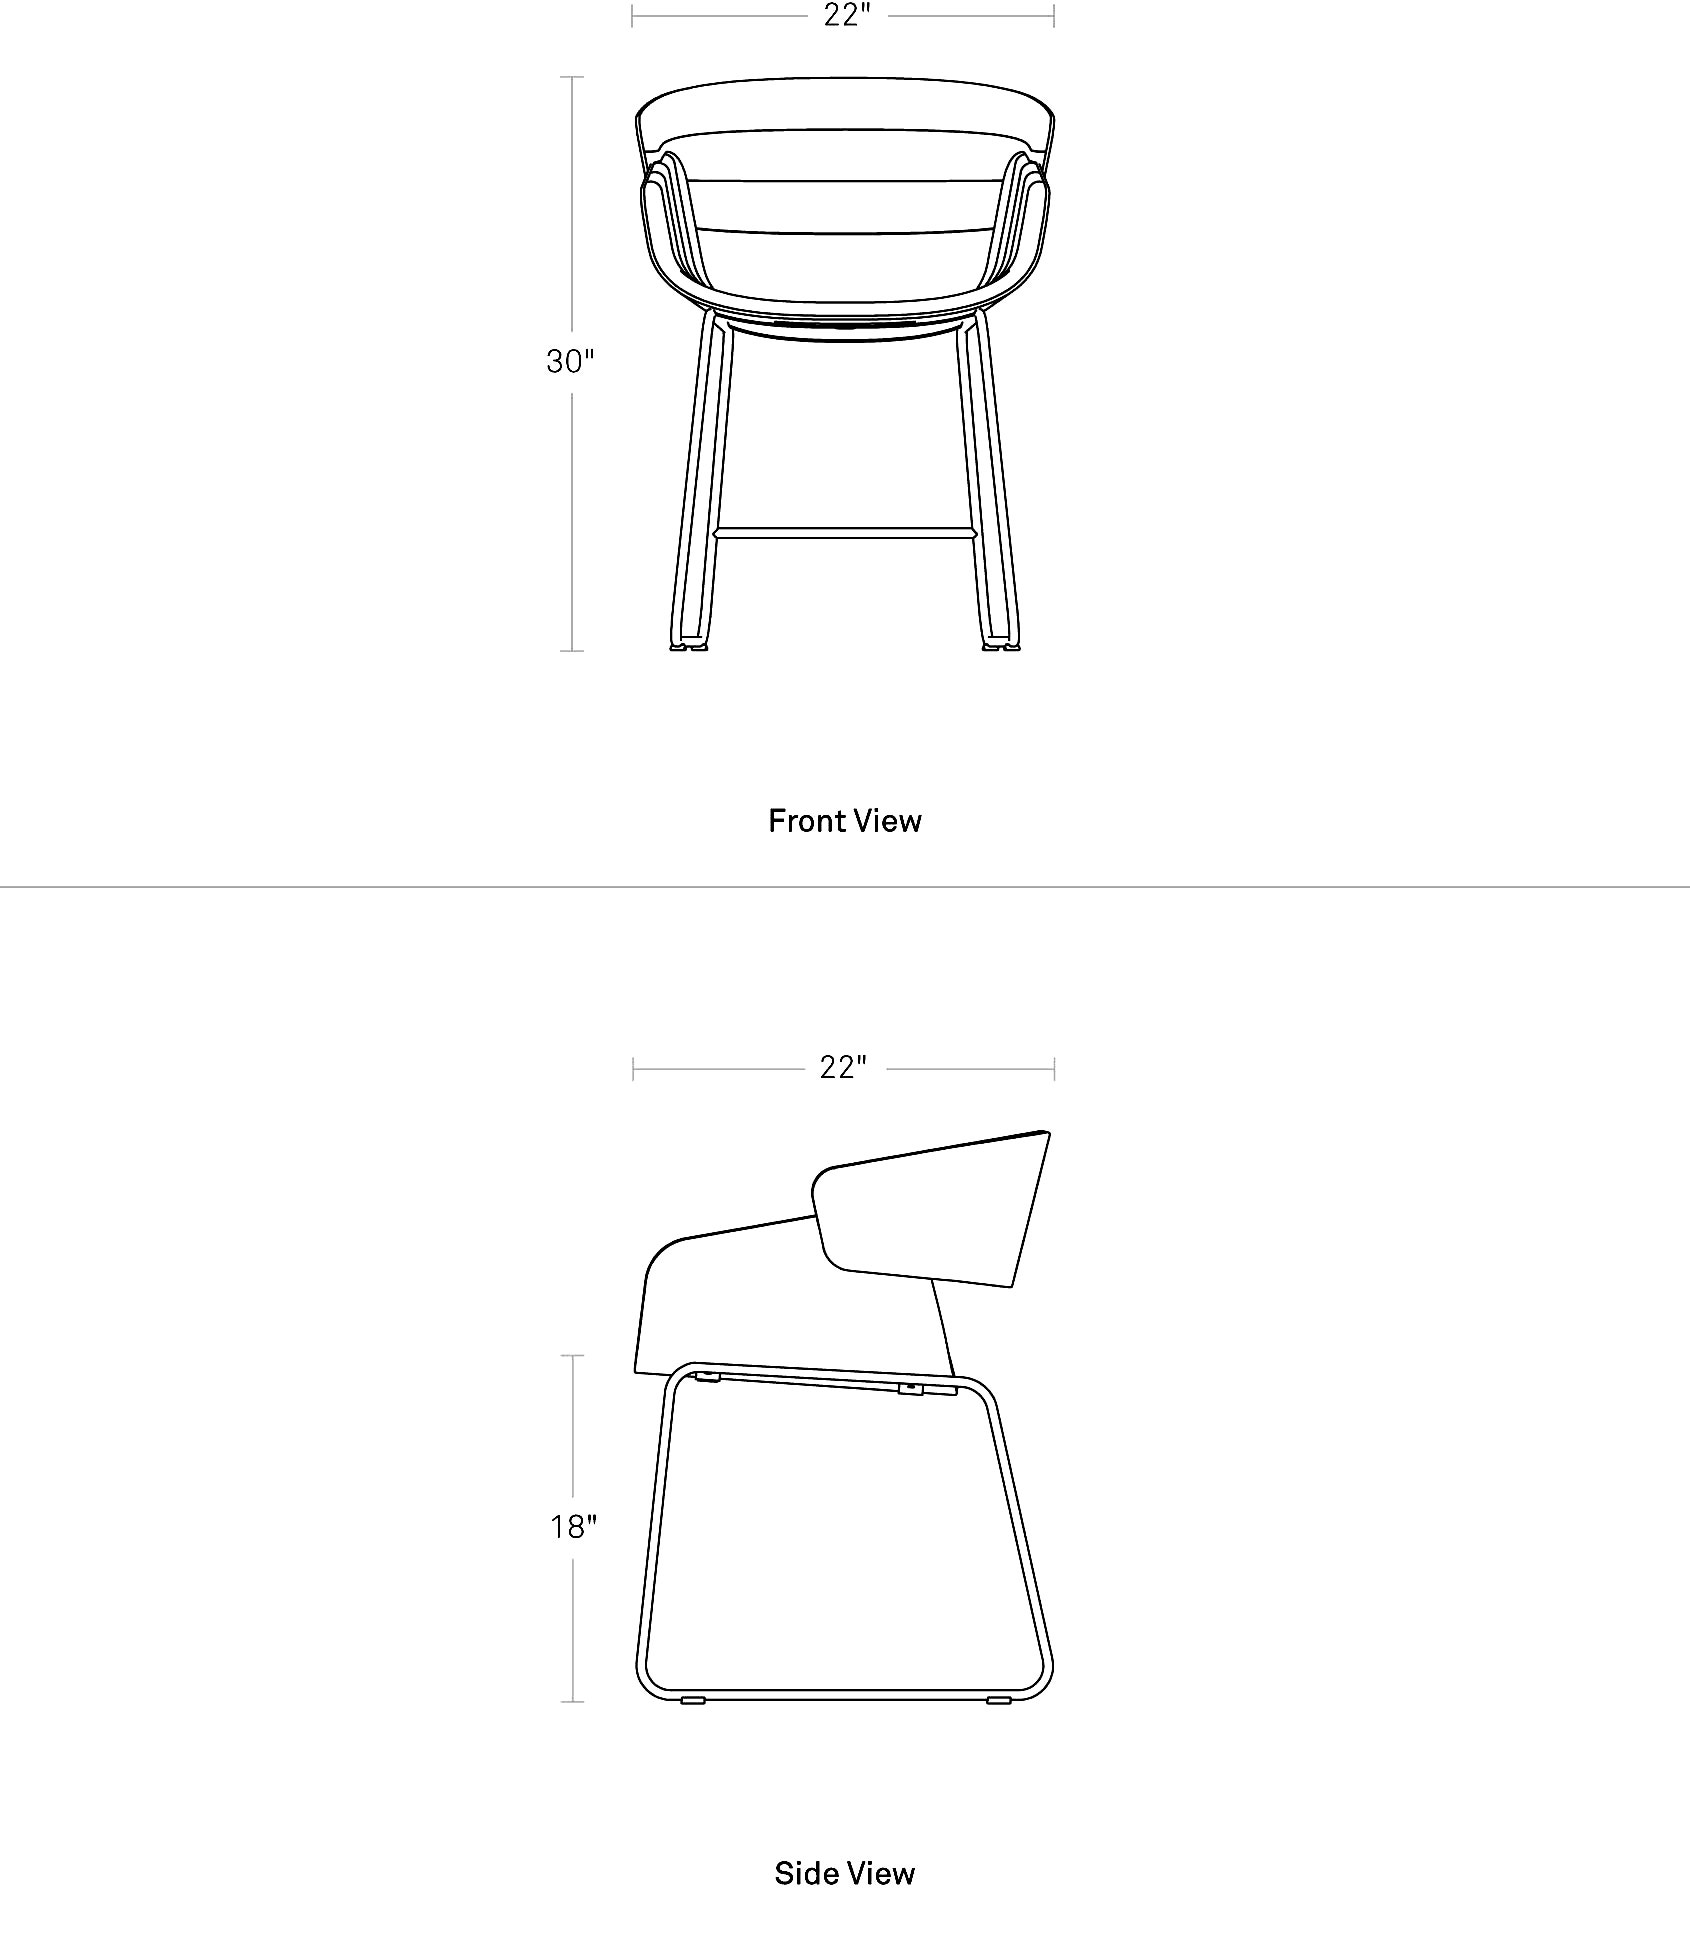 Dining Room Chair Dimensions: Racer Dining Chair - Modern Fabric Dining Chair